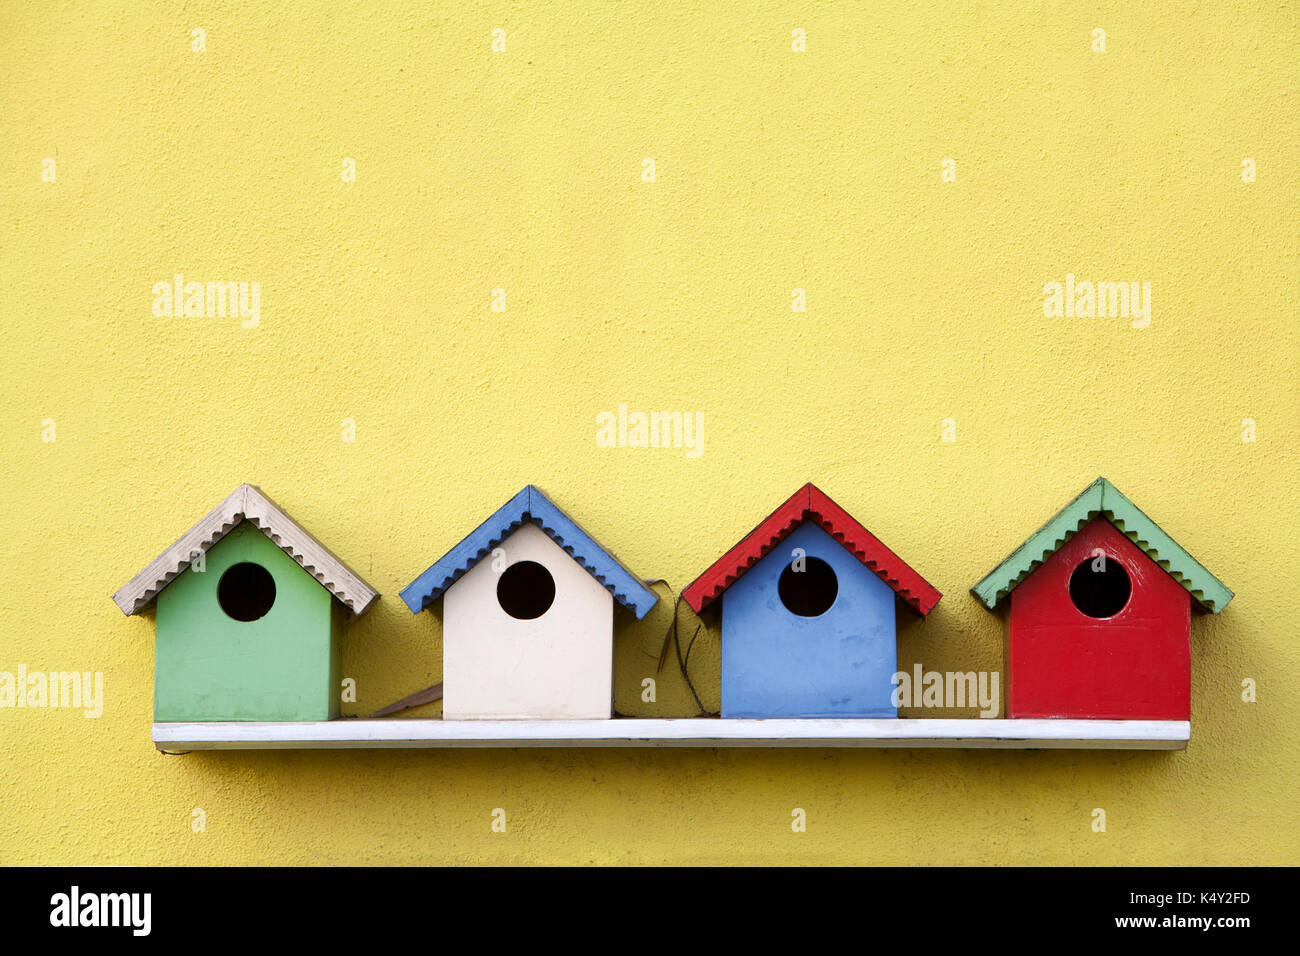 Street of four colorful birdhouses hanging on a yellow wall - Stock Image